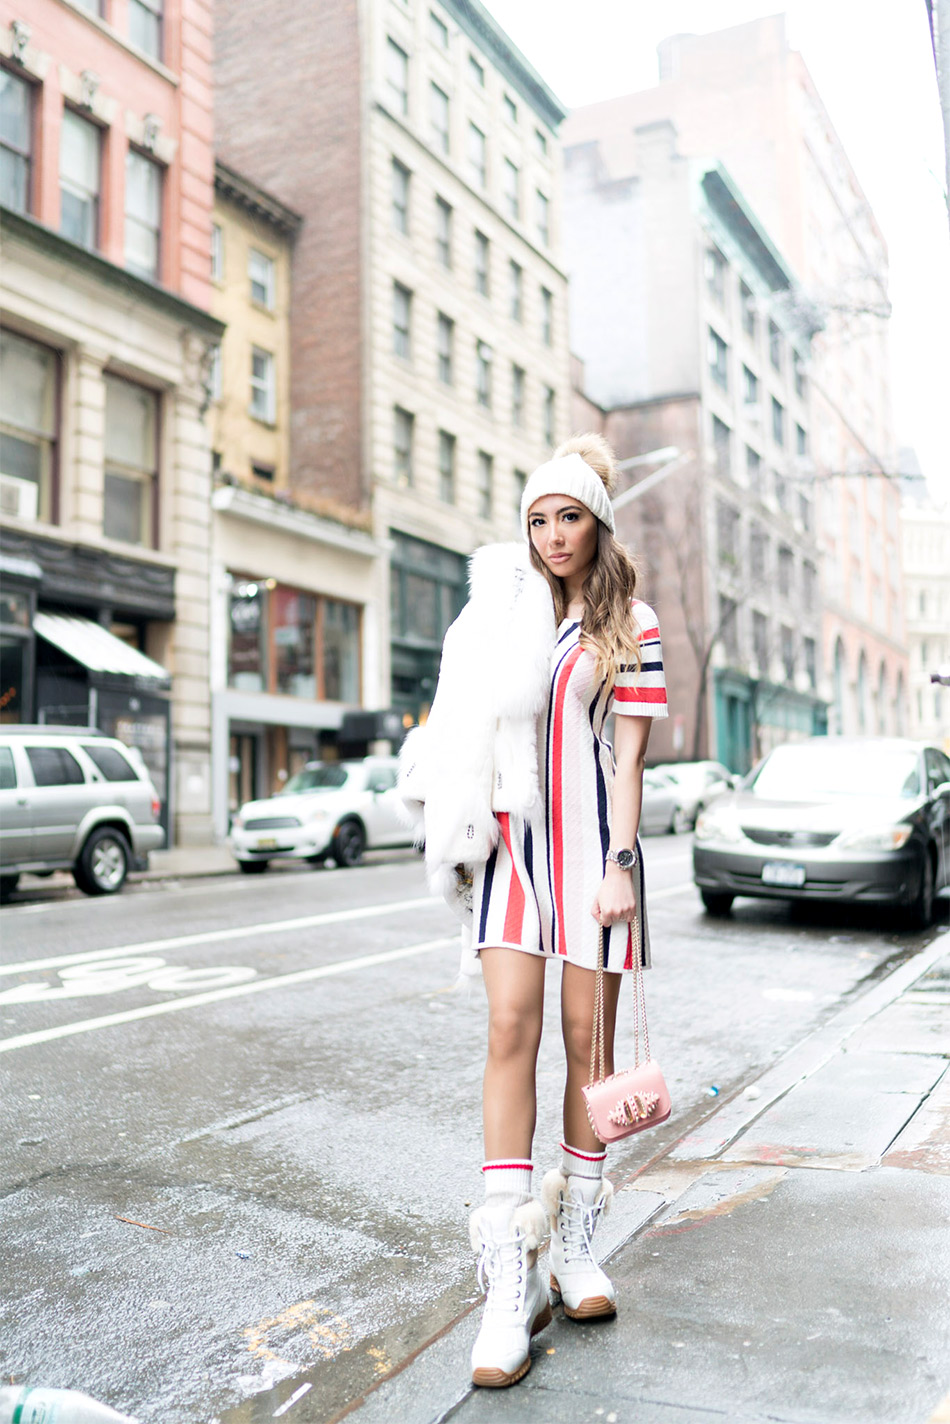 Ulia Ali in Tularose striped 70s dress from Revolve. UGG boots